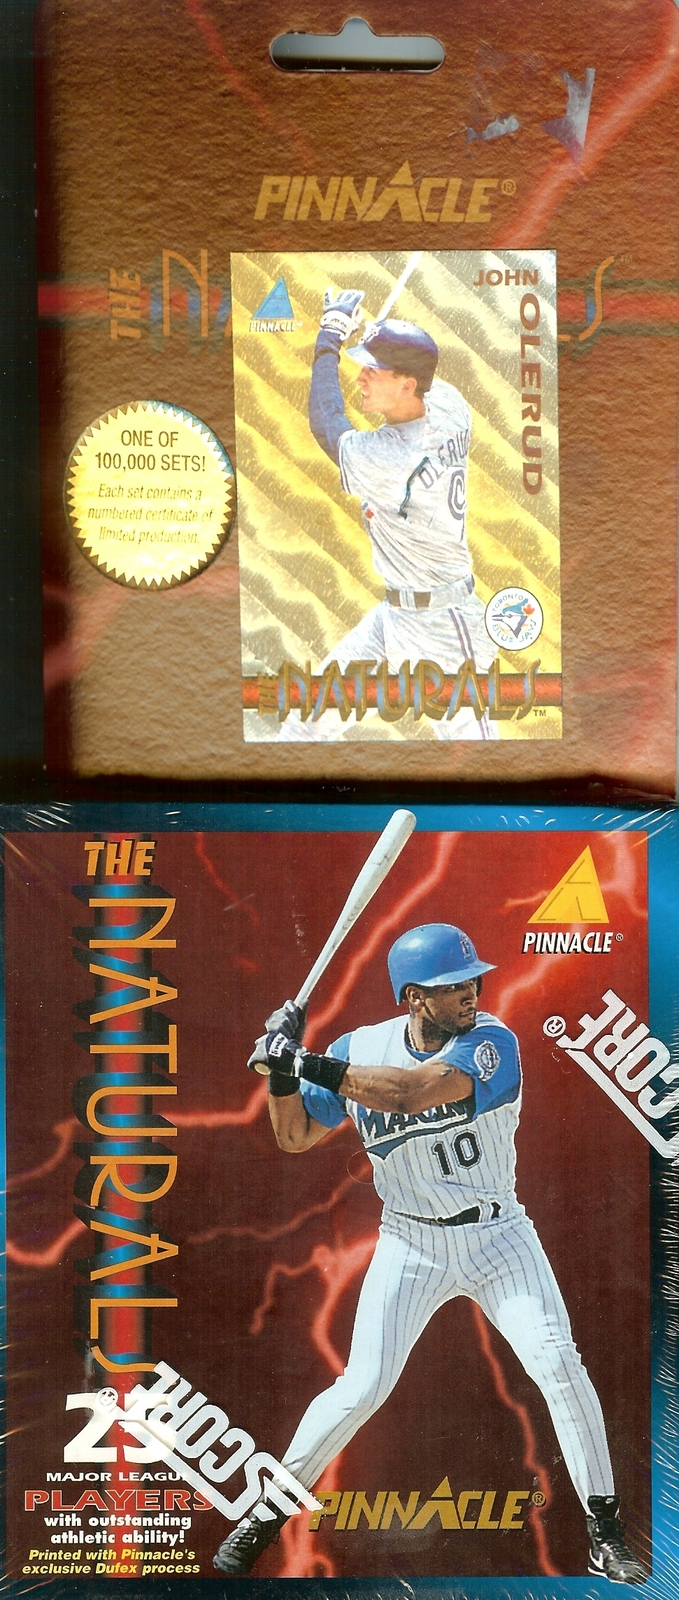 Primary image for 1994 pinnacle the naturals sealed box set w/promo baseball card